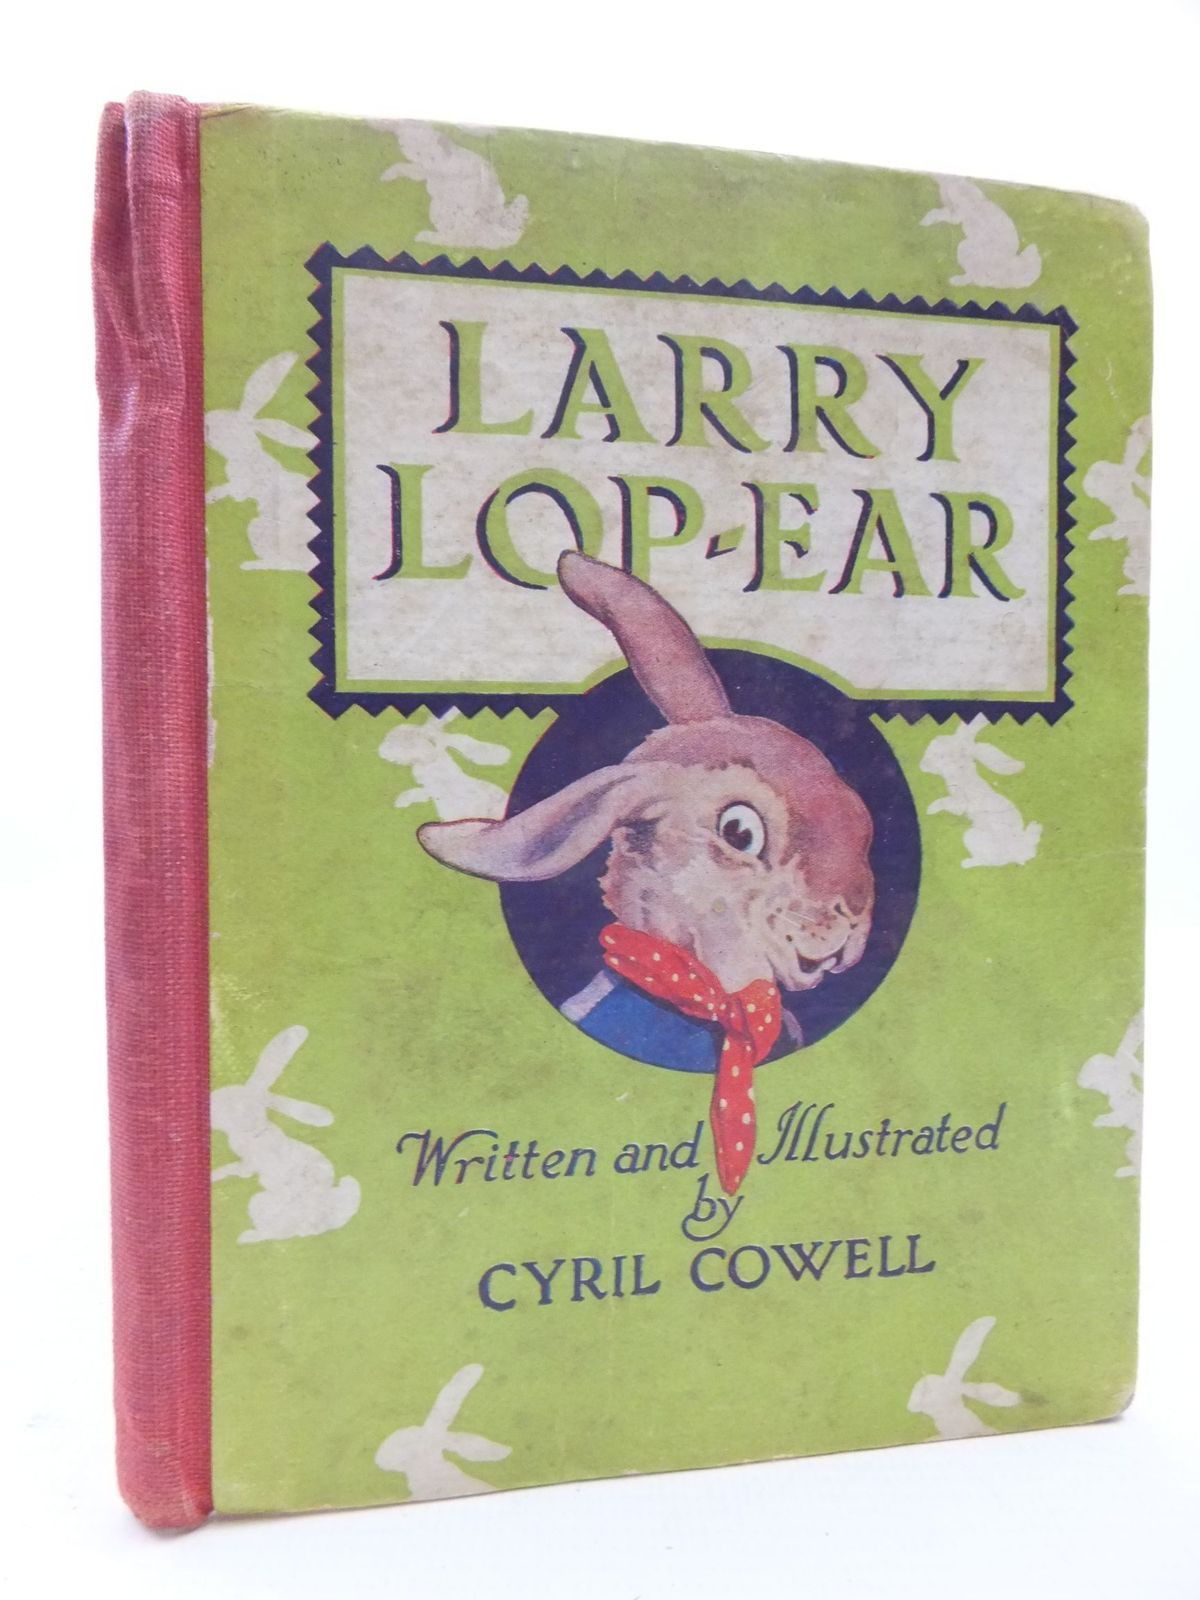 Photo of LARRY LOP-EAR written by Cowell, Cyril illustrated by Cowell, Cyril published by The Grout Publishing Company (STOCK CODE: 1108924)  for sale by Stella & Rose's Books